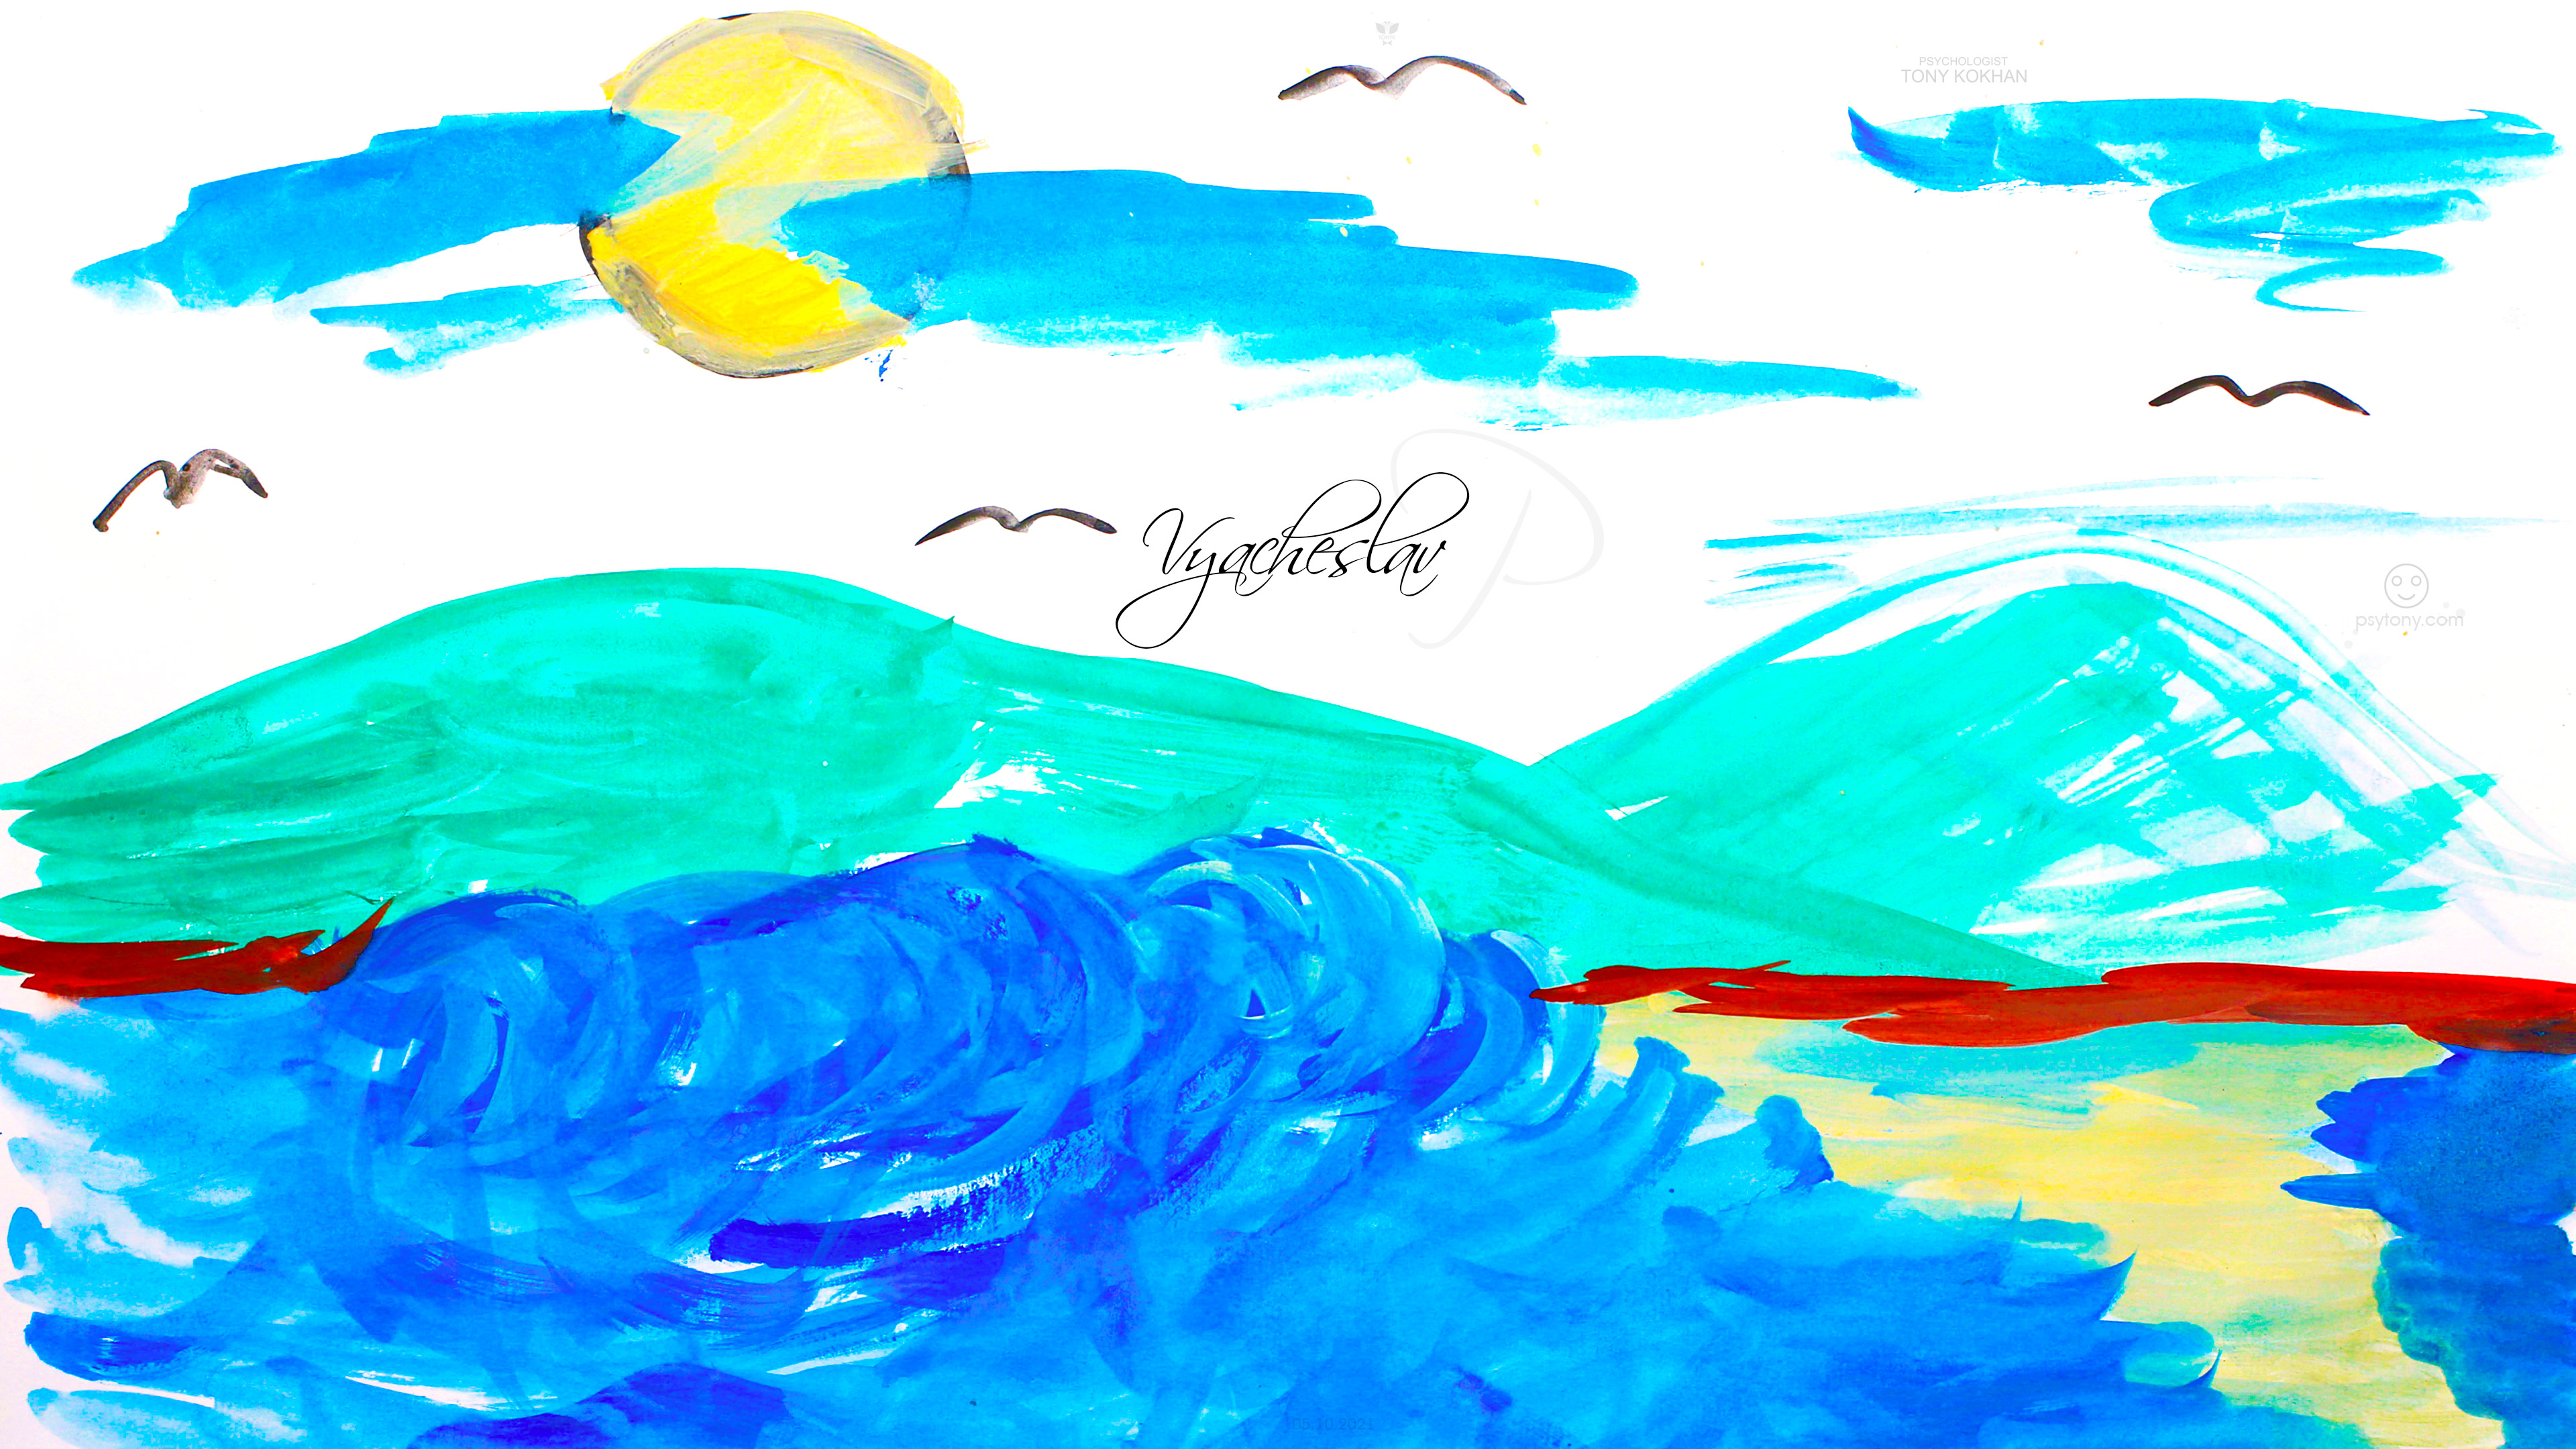 Vyacheslav-Soul-Boy-Moon-Water-Fish-Curve-Reflection-Four-Bird-Green-Whale-Mountains-Water-Waves-Art-2021-Multicolors-4K-Wallpapers-by-Psychologist-Tony-Kokhan-www.psytony.com-image